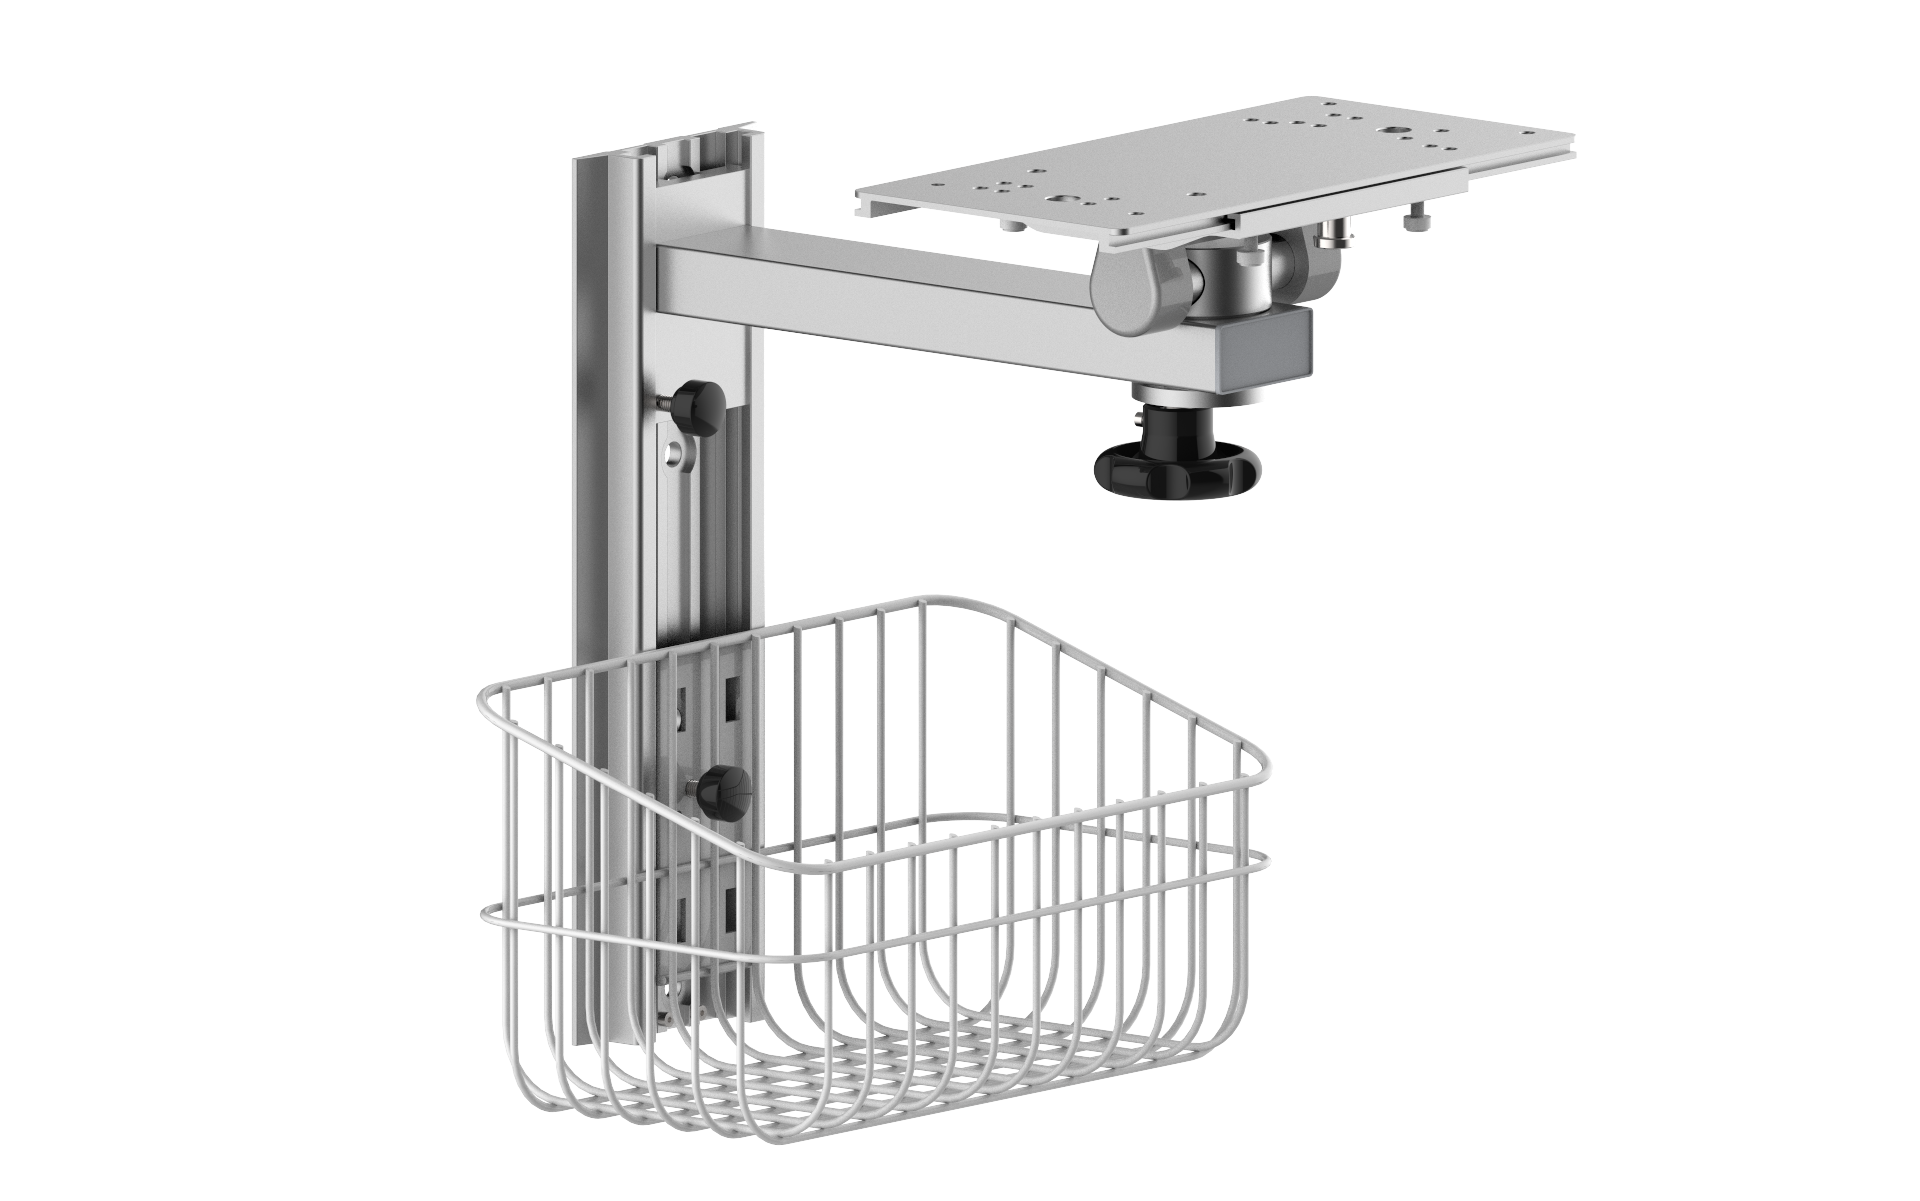 ..Patient Monitor Wall Mount with Basket